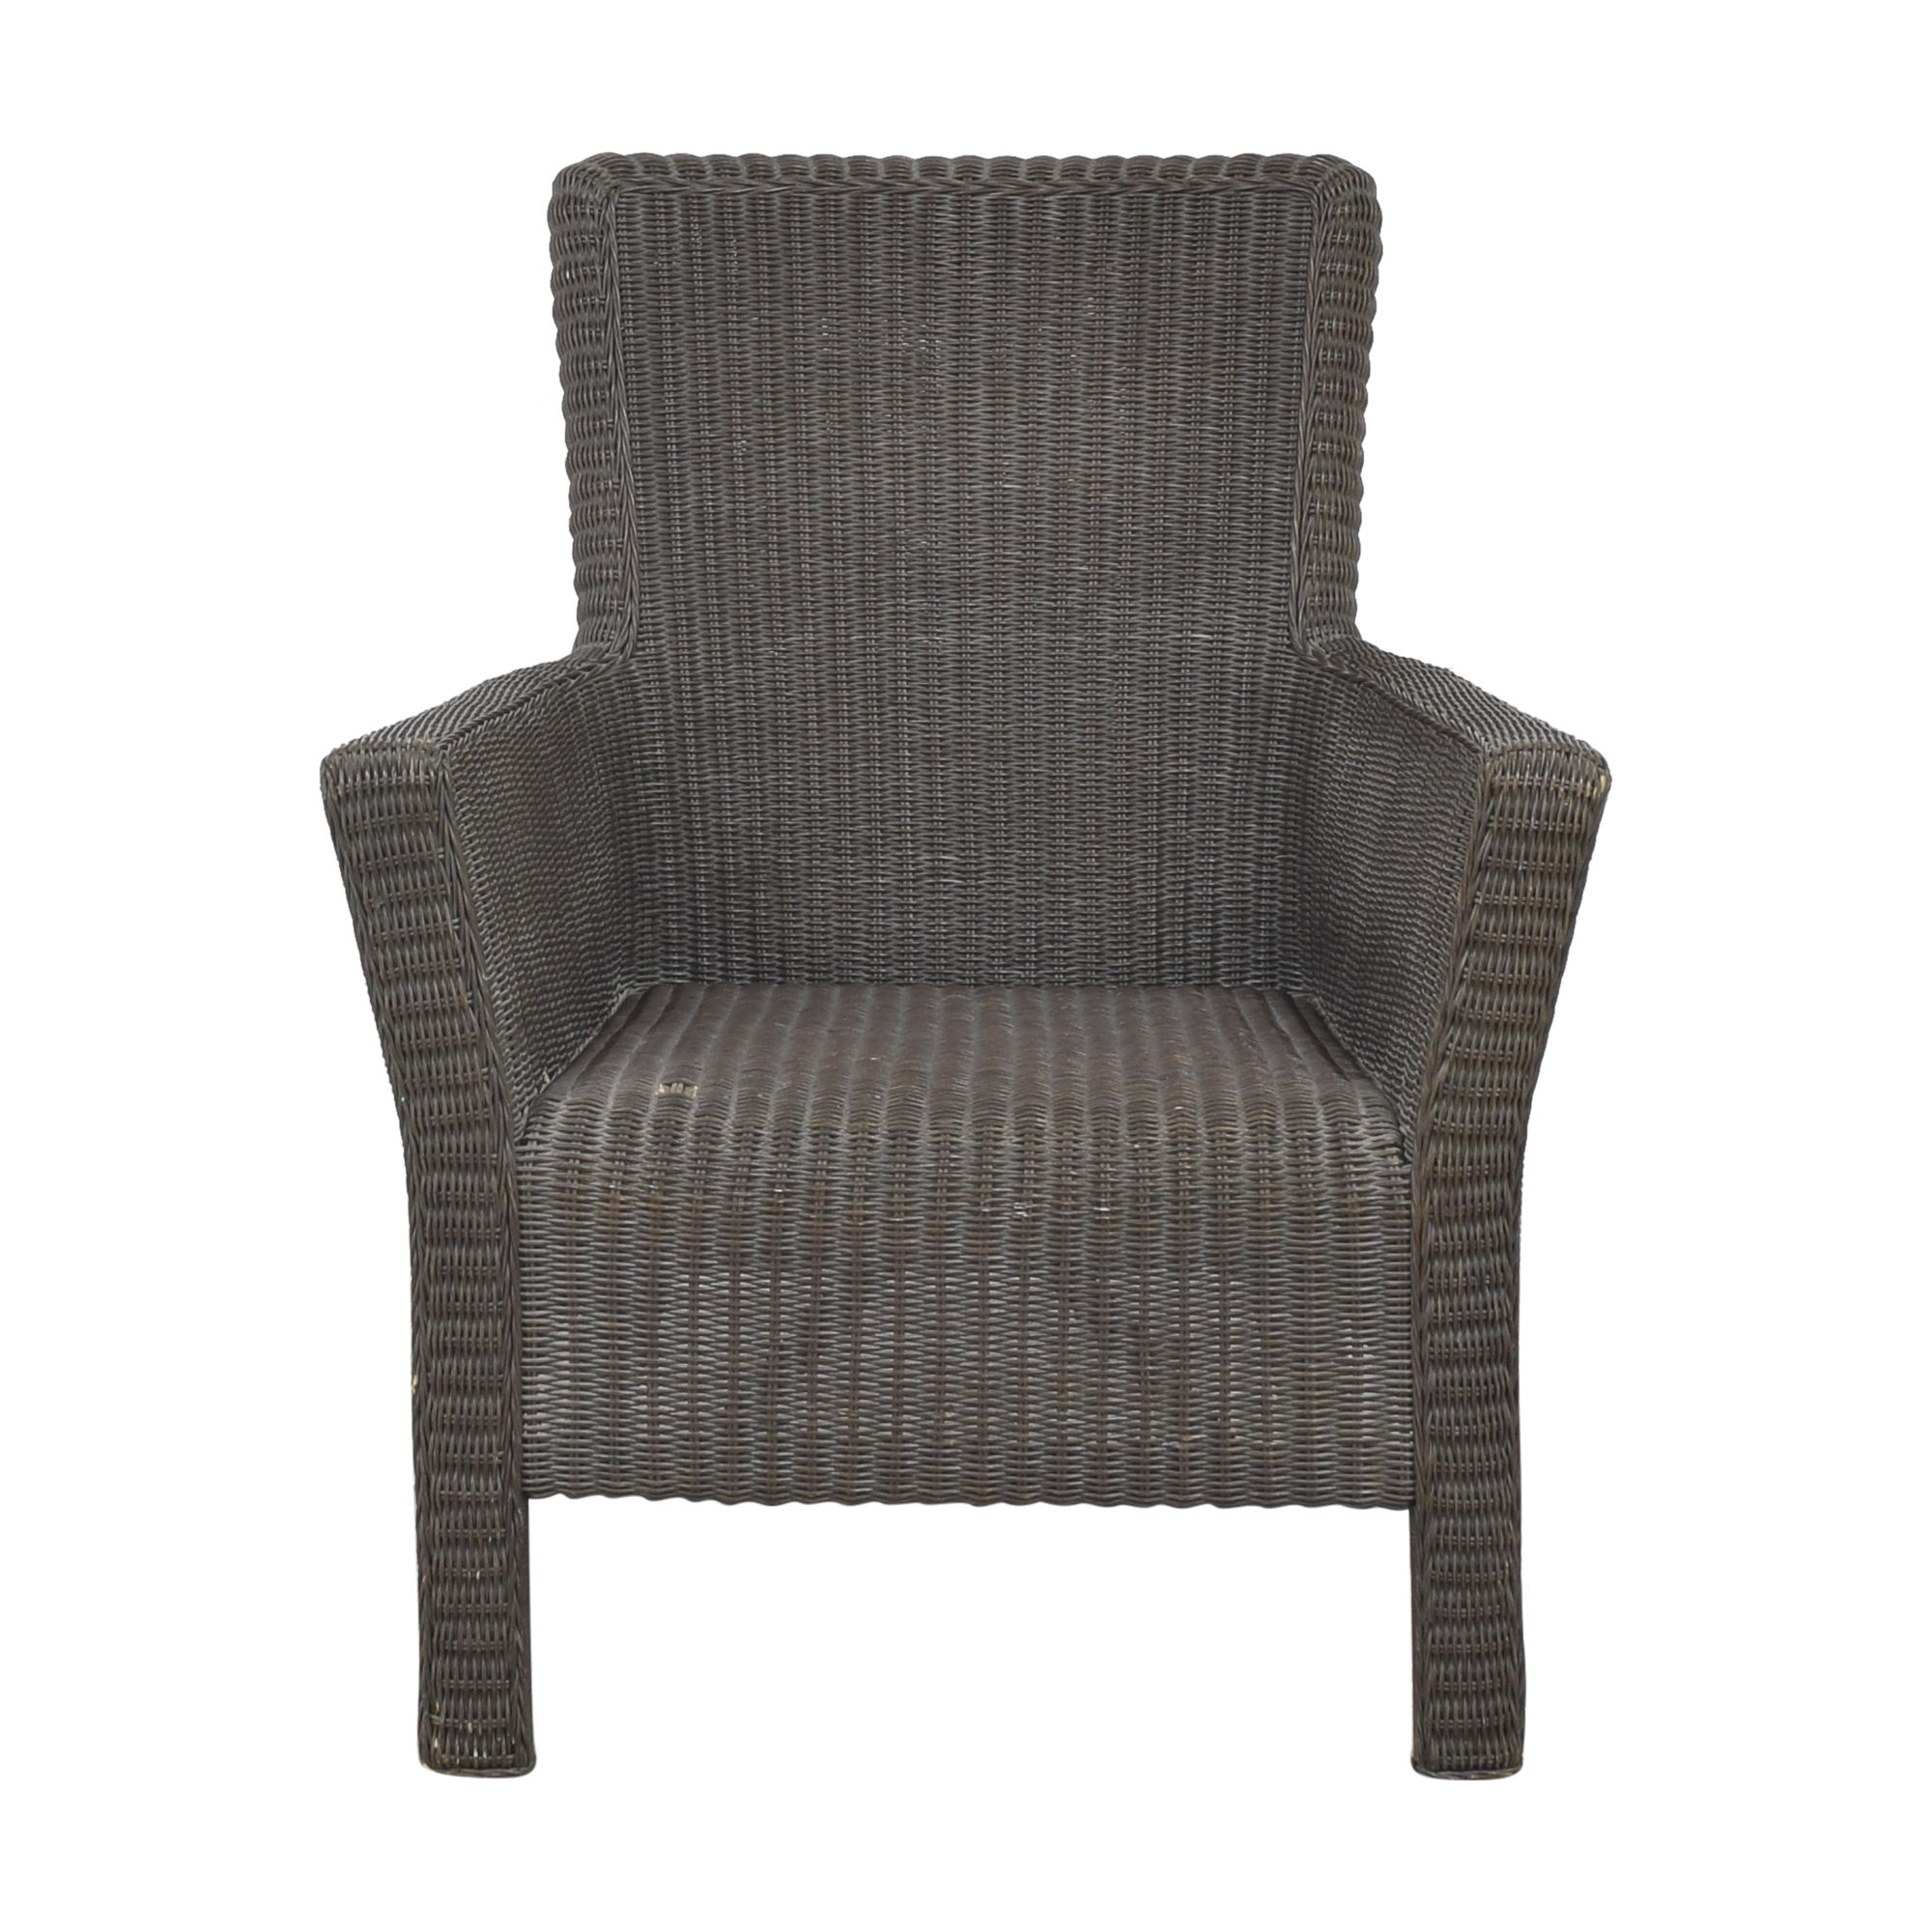 Crate & Barrel Crate & Barrel Wicker Arm Chair coupon